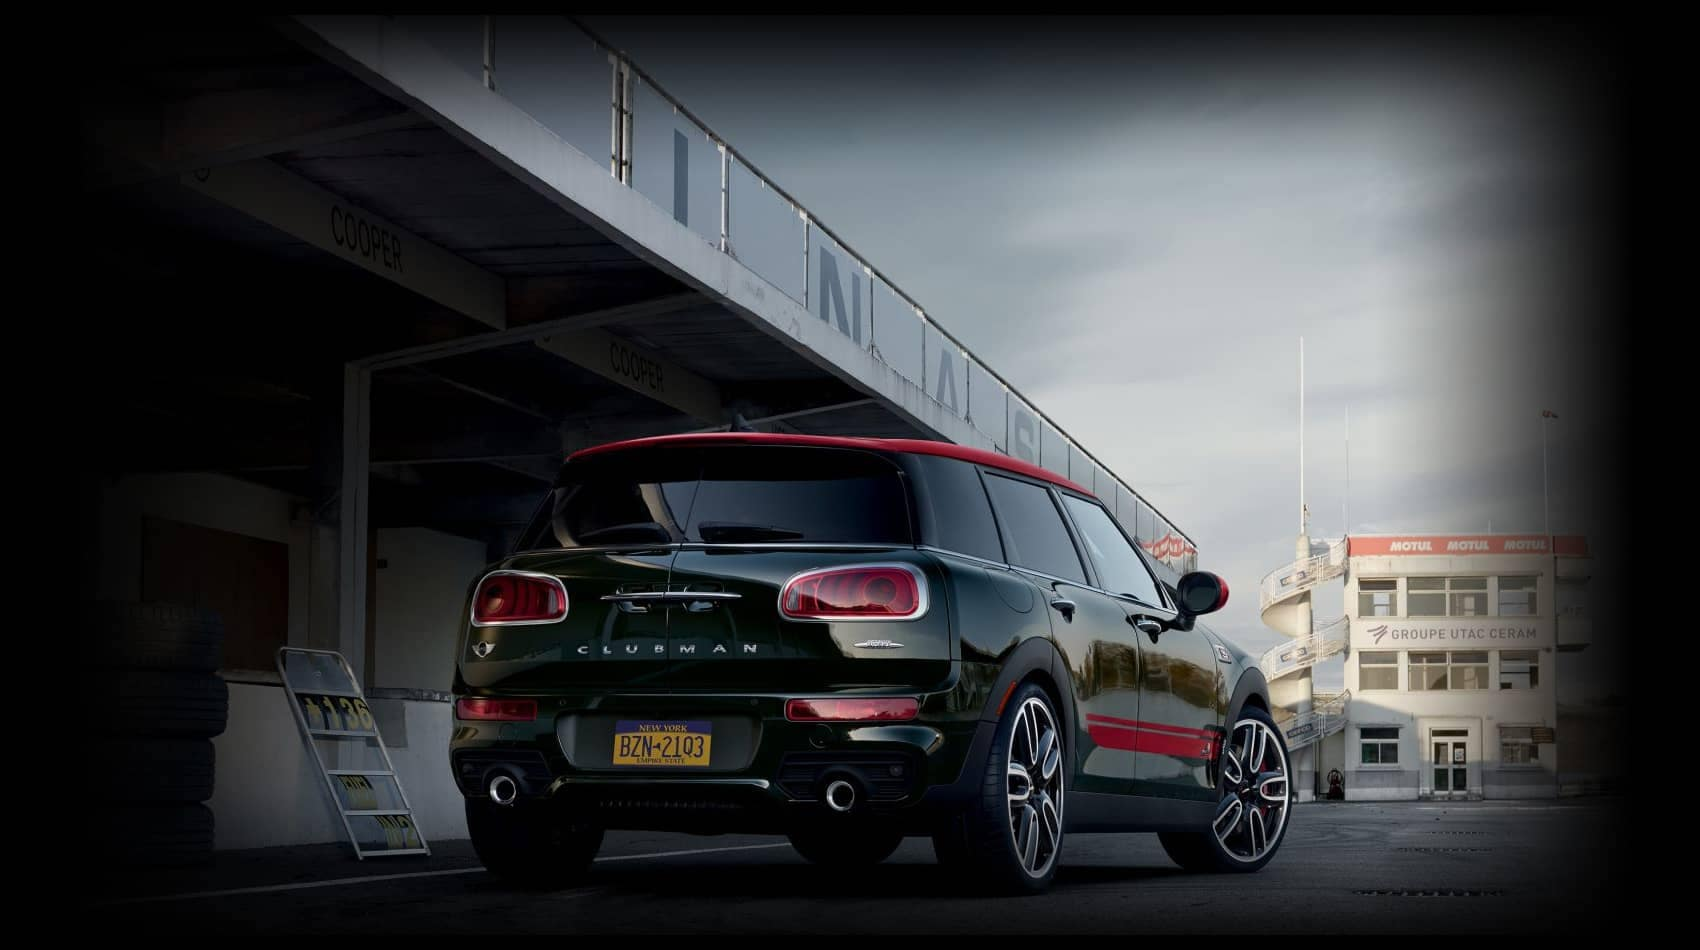 MINI John Cooper Works Clubman Rear View